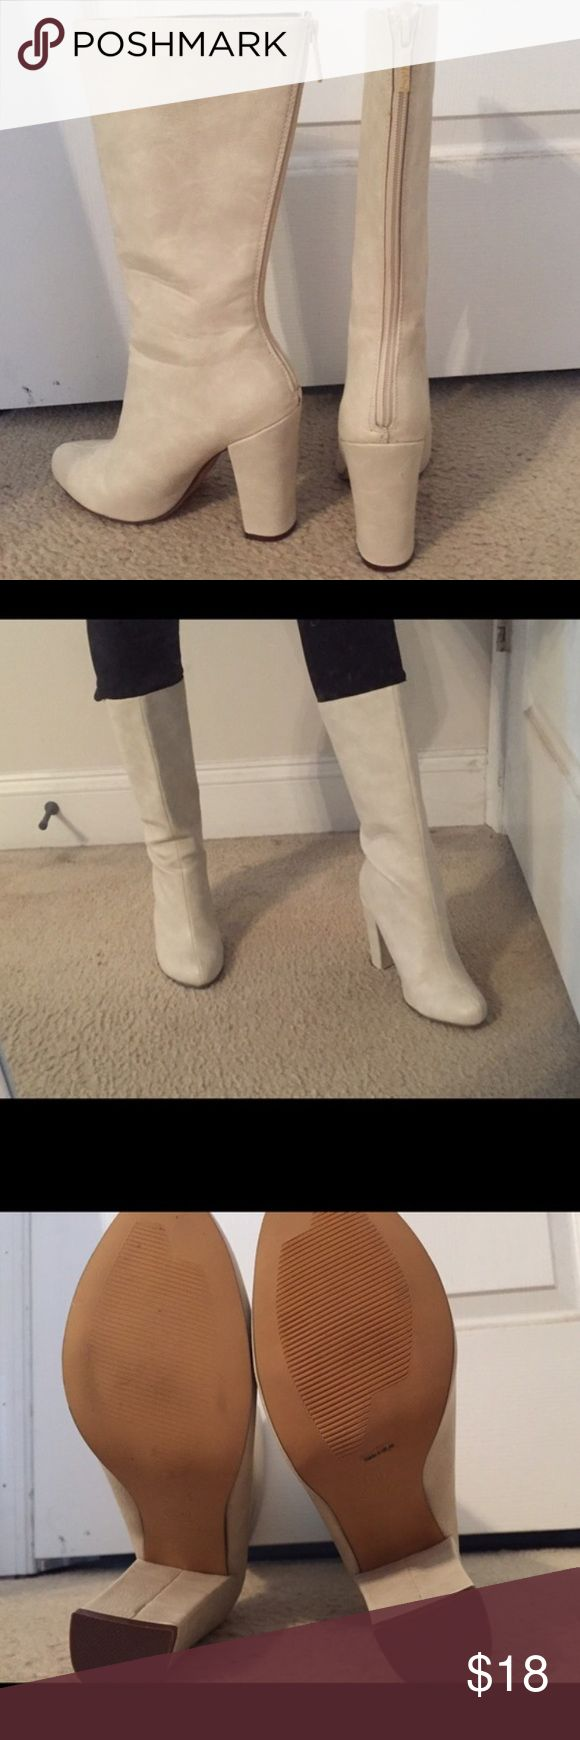 White high heeled boots Never worn high heeled boots! I bought these boots for my Halloween costume but didn't end up wearing them! The heel is about 4.5 inches. White/cream color. Michael Antonio Shoes Heeled Boots